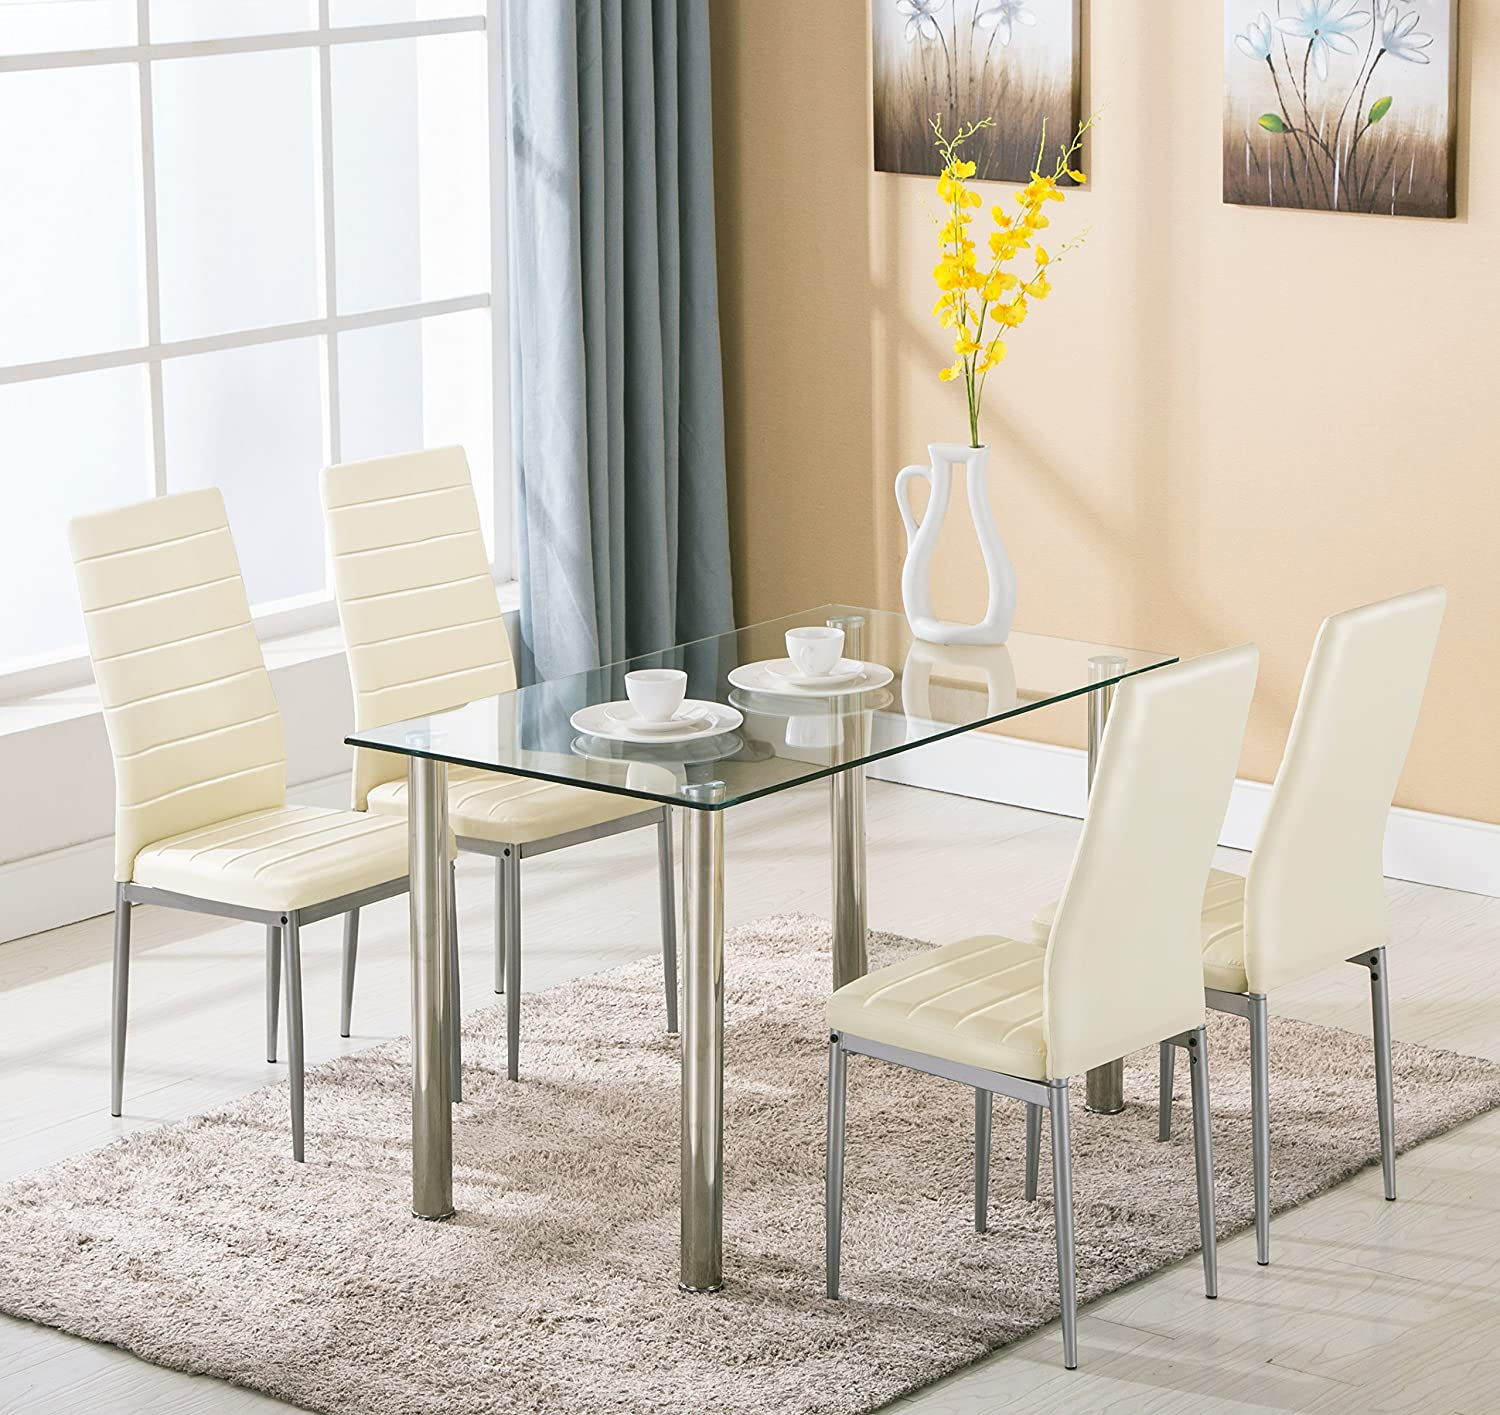 Amazon.com   5pc Glass Dining Table With 4 Chairs Set Glass Metal Kitchen  Furniture   Table U0026 Chair Sets